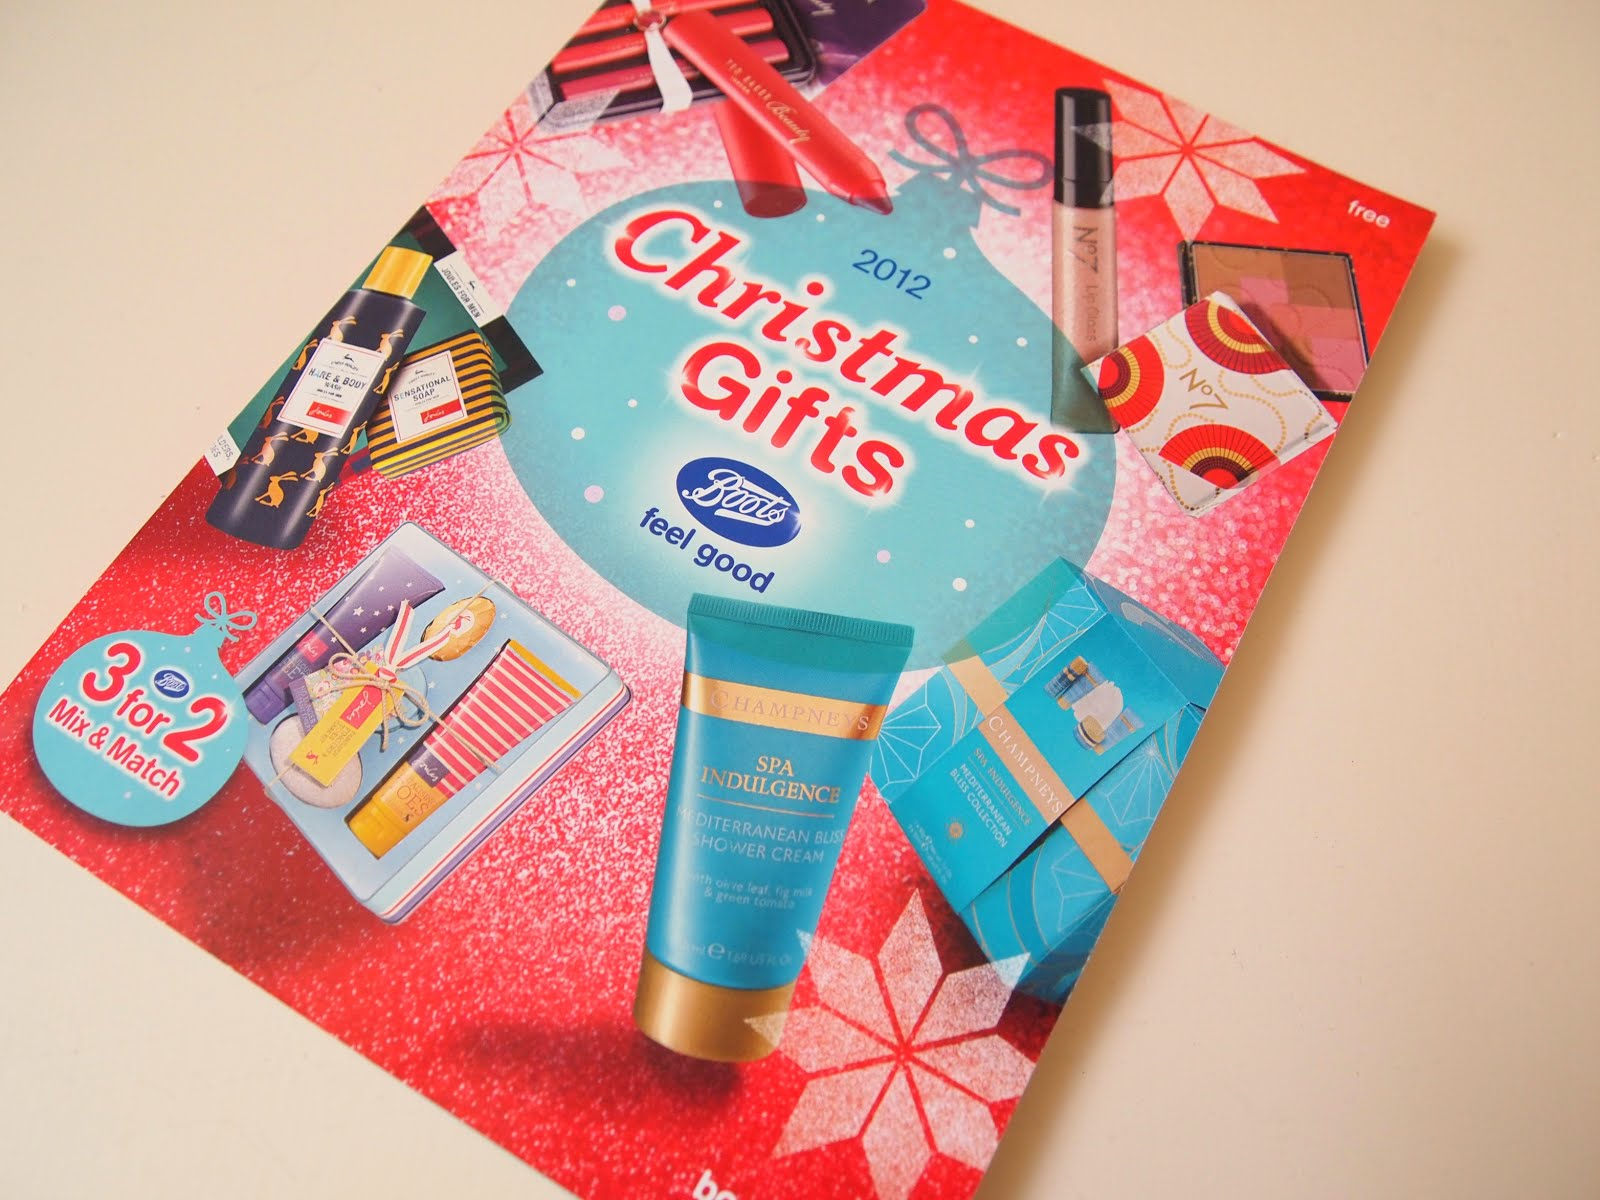 Christmas Gift Guide Catalogue.The Boots Gift Guide 2012